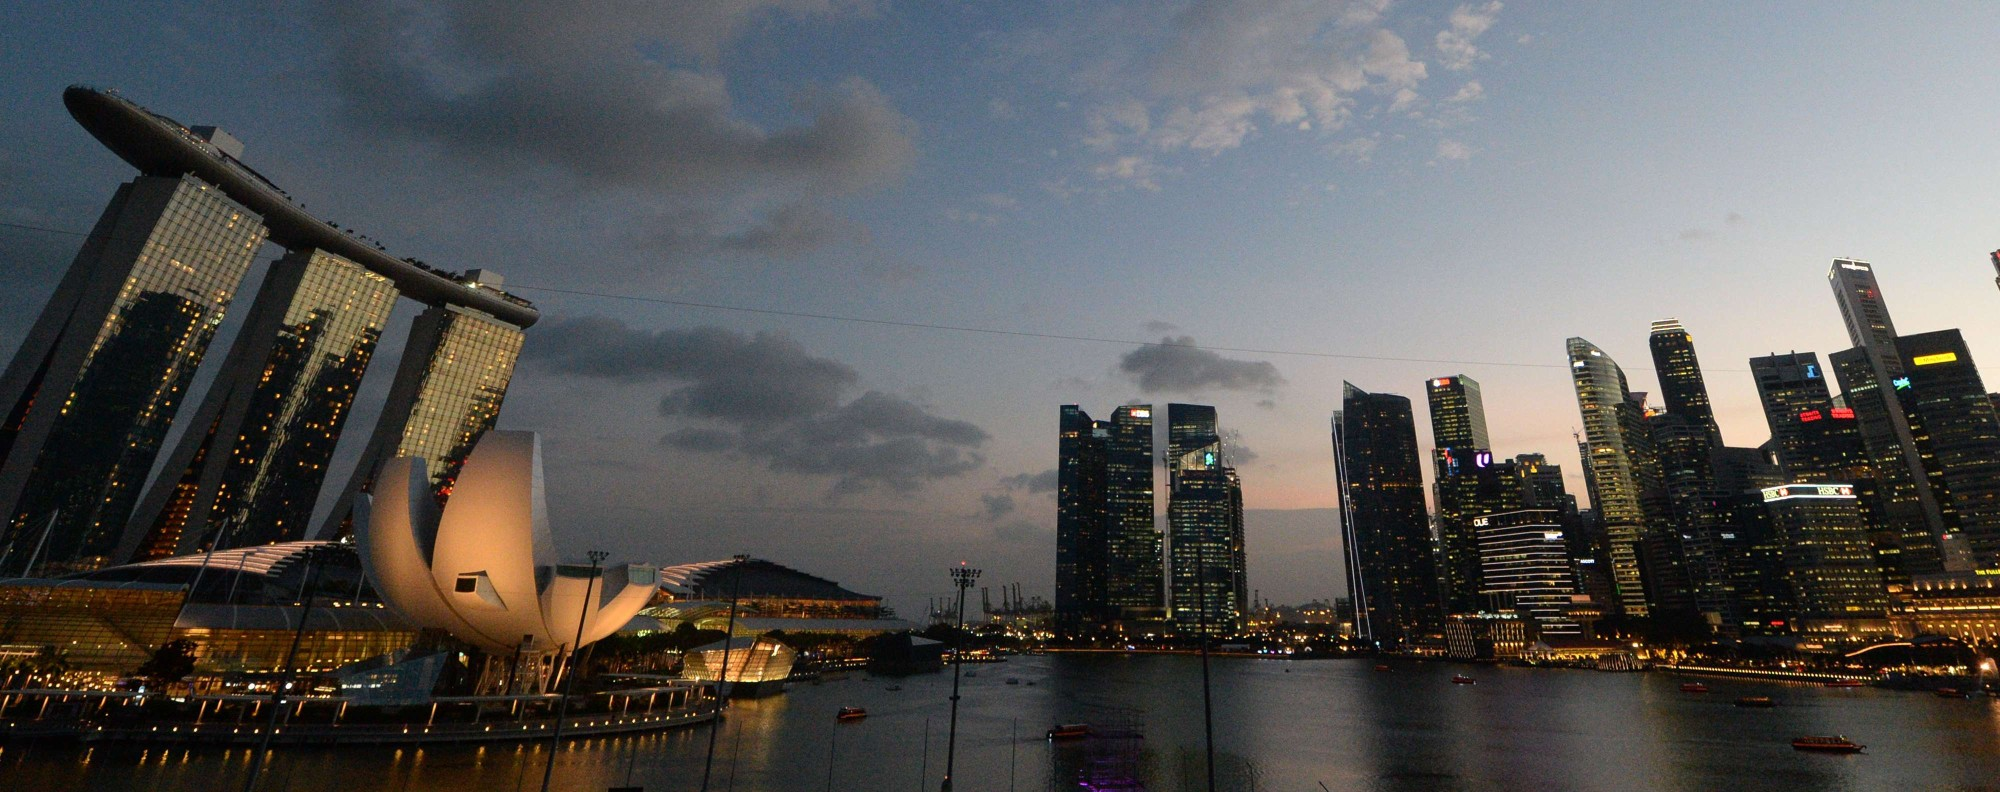 Singapore: renowned for its open and competitive economy. Photo: AFP